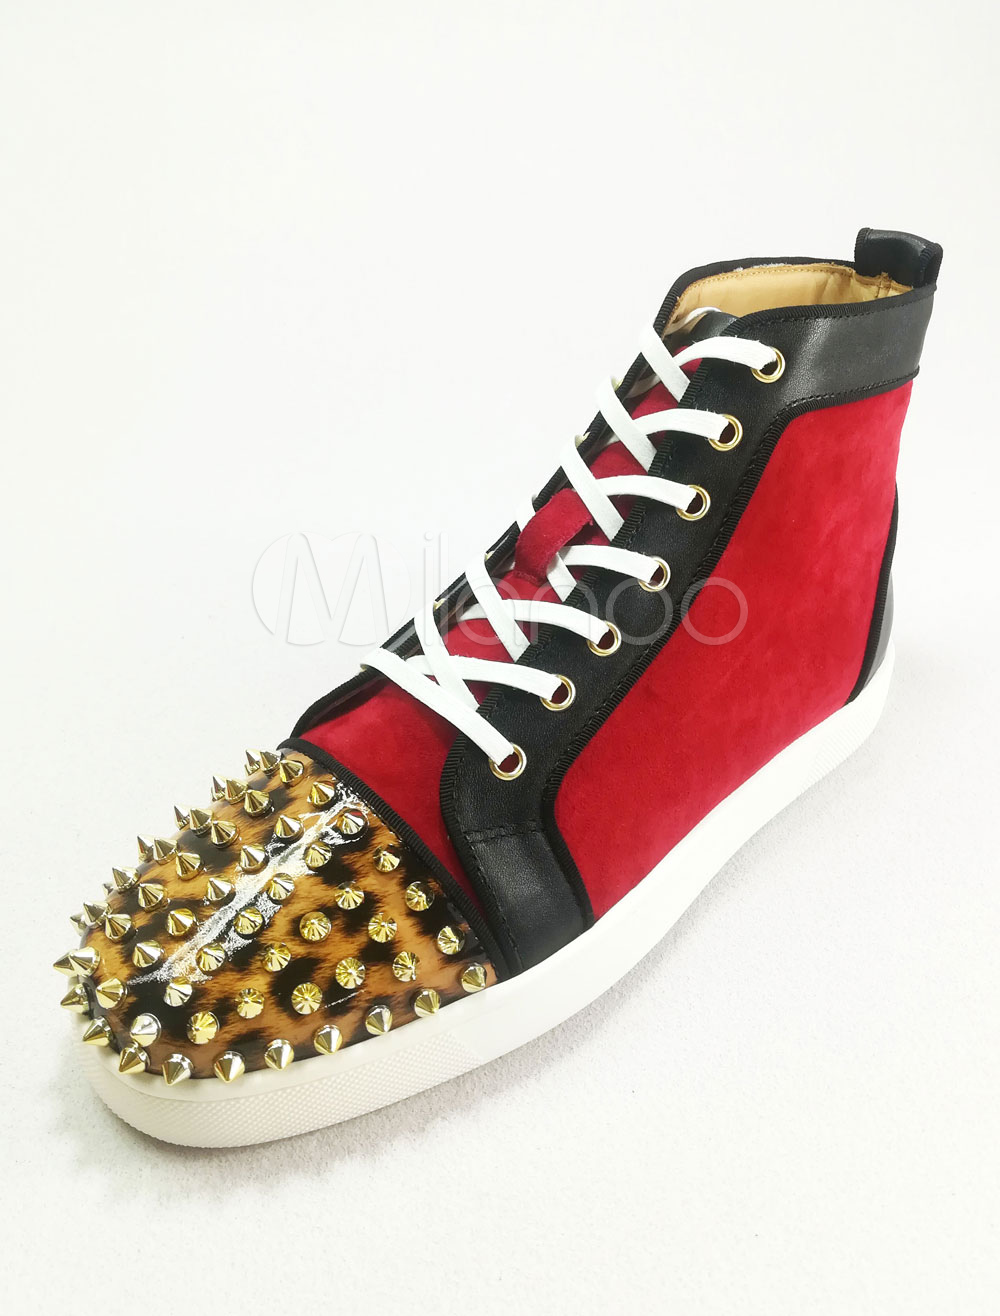 Buy Burgundy Skate Shoes Leather Round Toe Rivets Lace Up High Top Sneakers For Men for $85.49 in Milanoo store